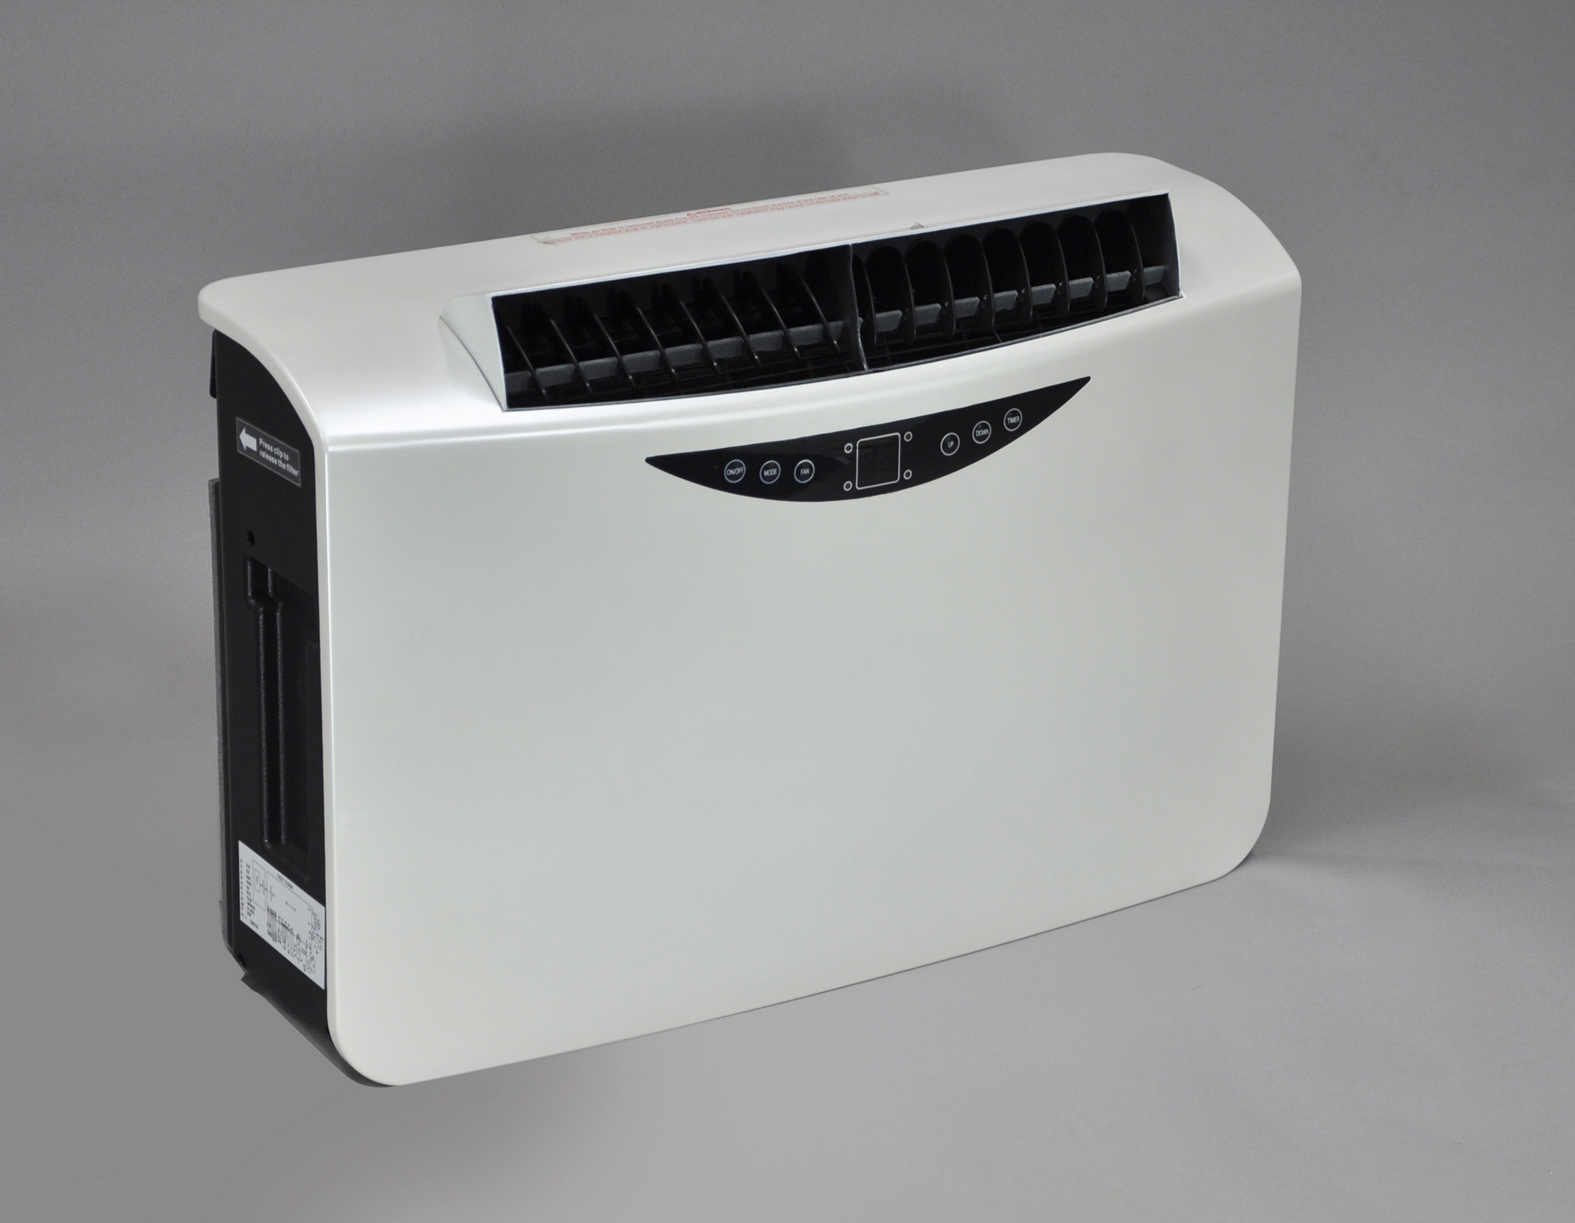 Small Air Conditioning Unit For Bedroom Salonetimespress Com. Best Portable Air Conditioner For Bedroom   Mark Cooper Research